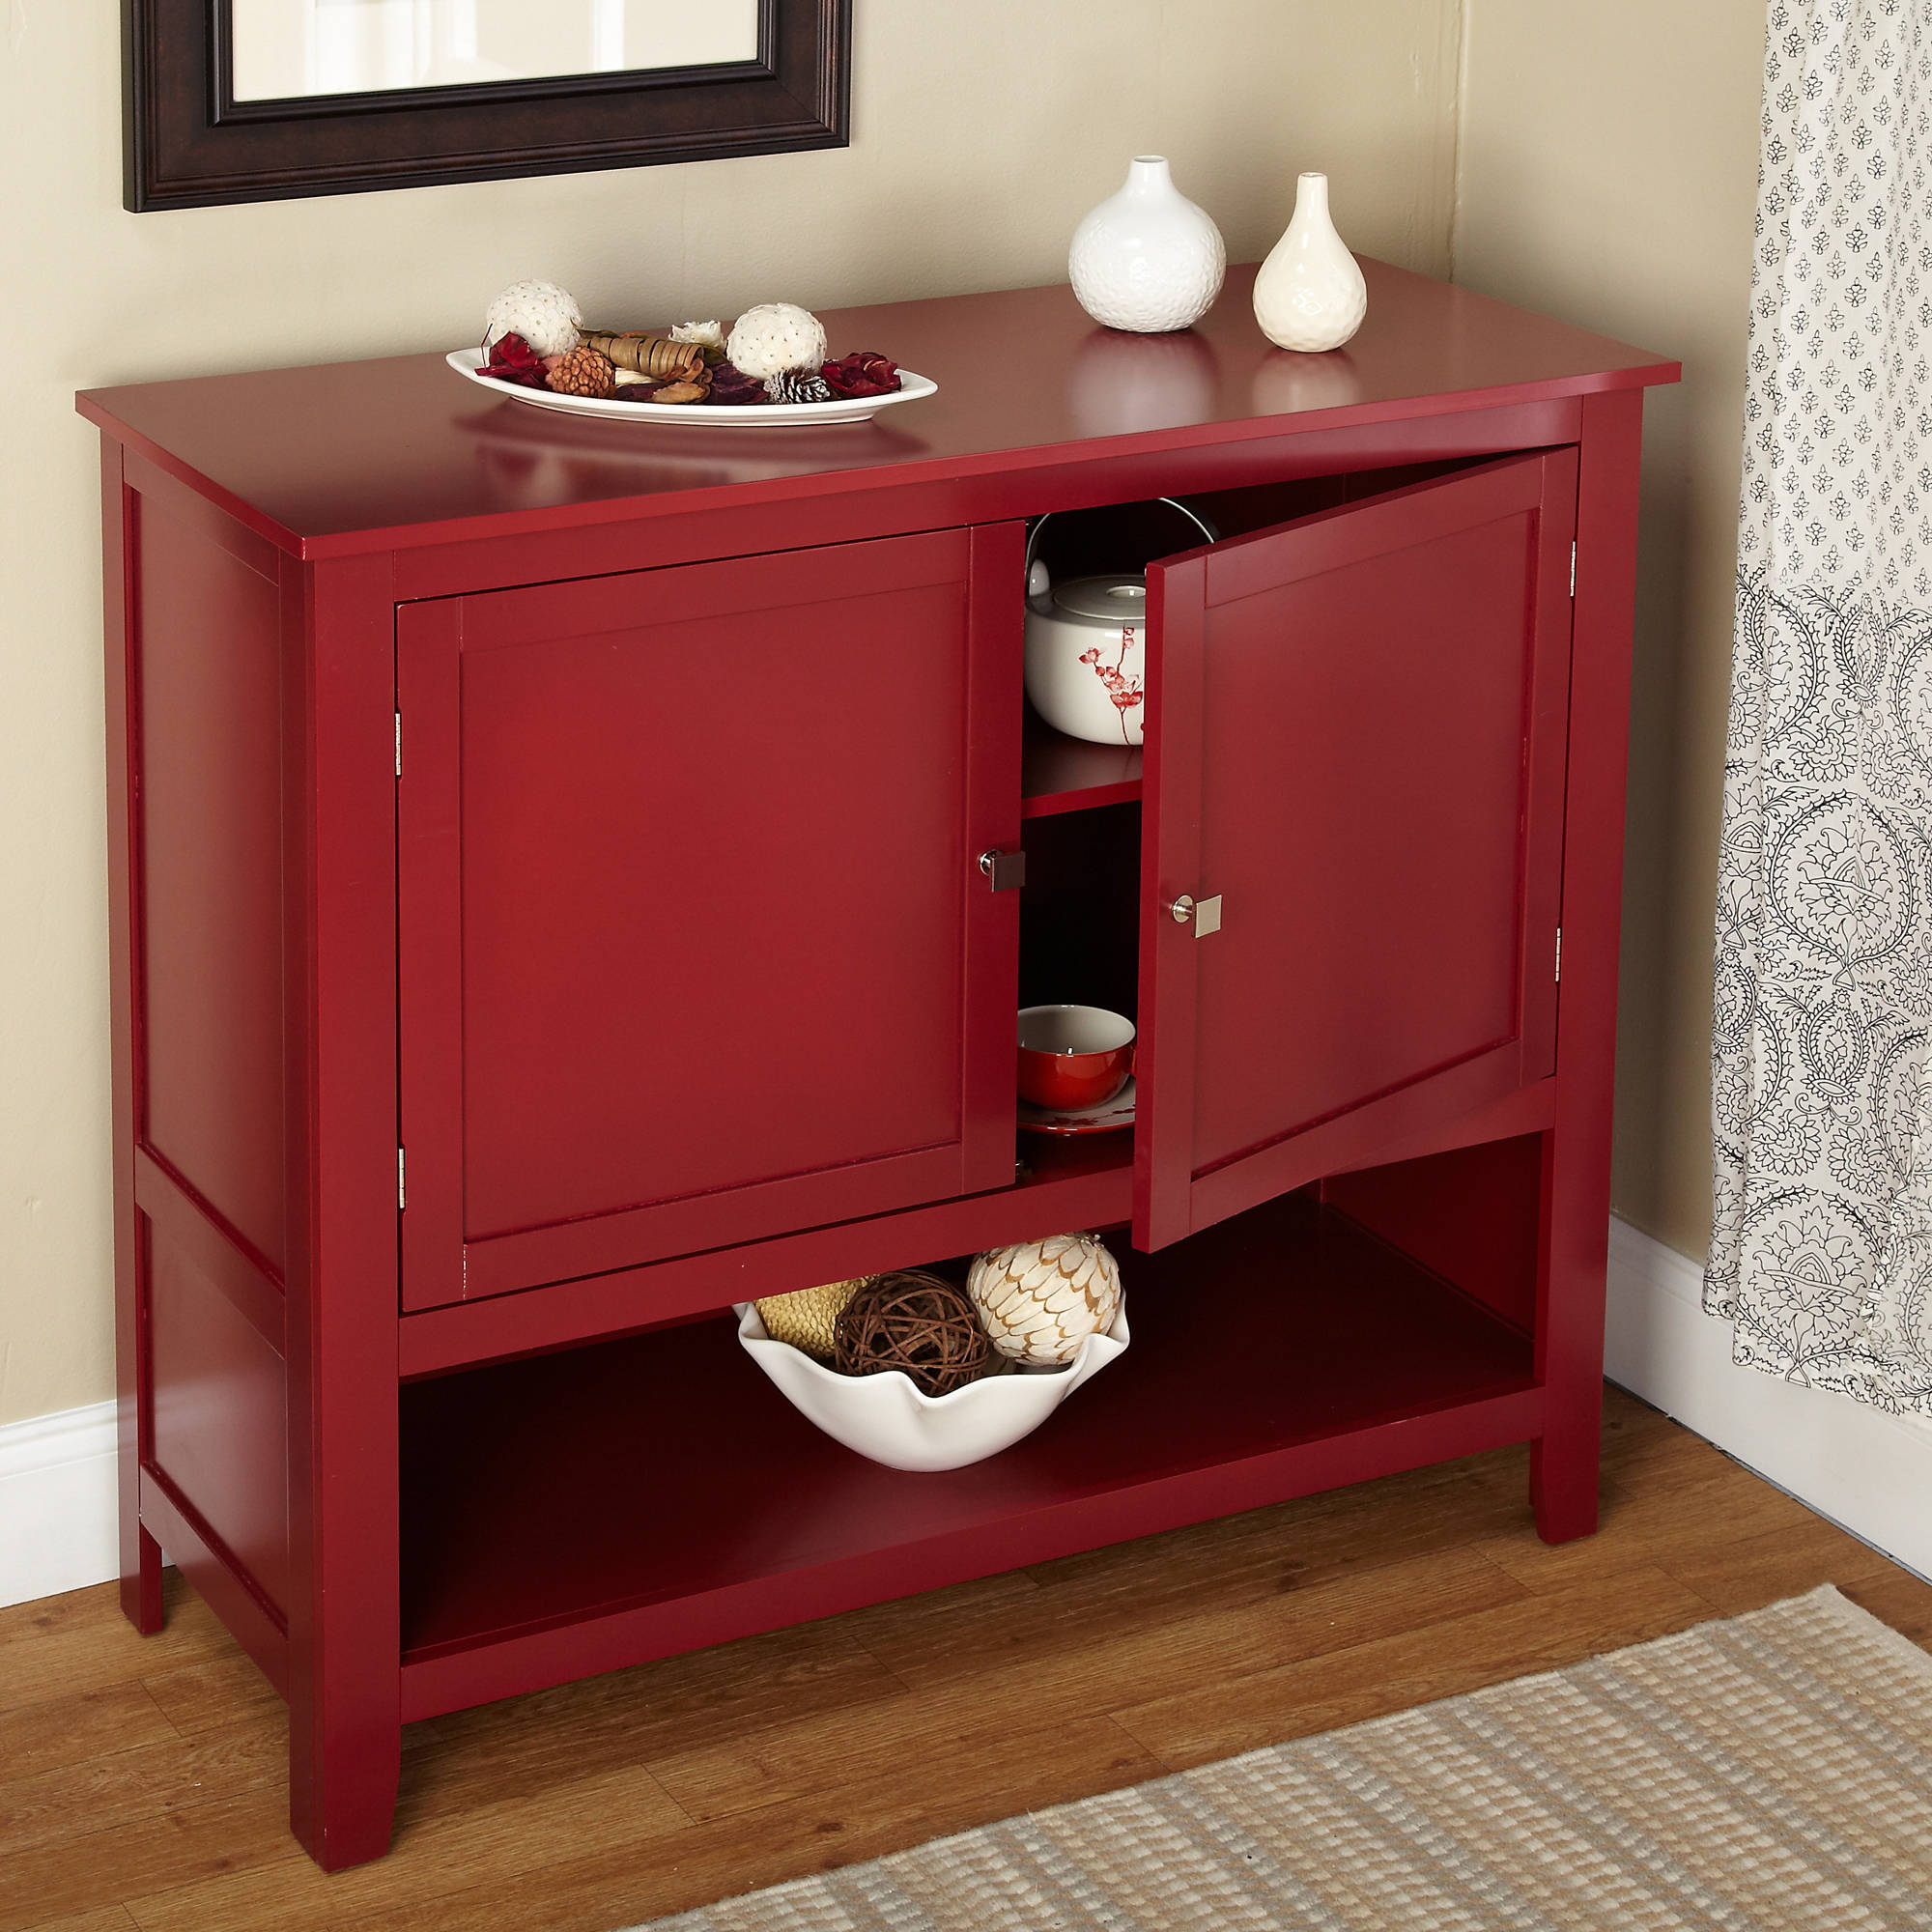 Red Kitchen Table: Red Buffet Cabinet Kitchen Storage Shelf With Doors Table